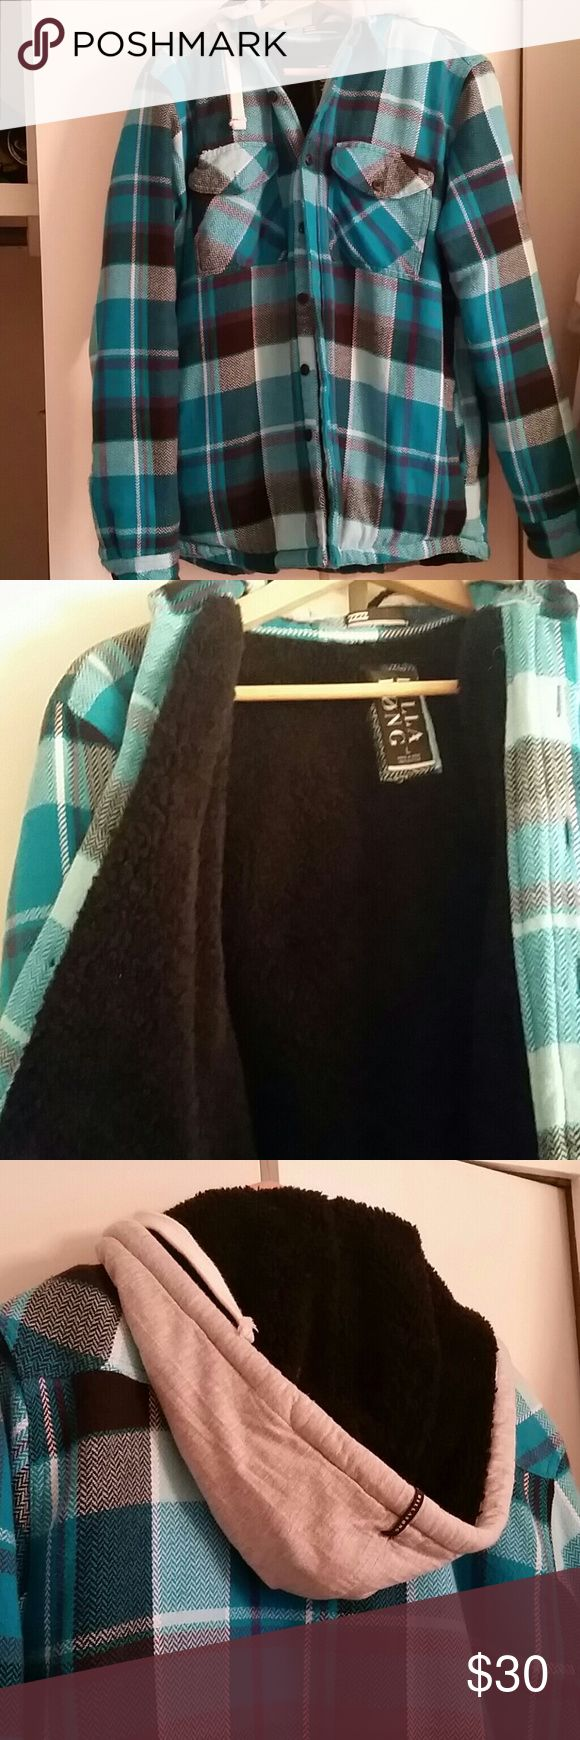 Vibrant colors, faux fur lined flannel jacket Excellent condition, barely worn. Colors are amazing. Jacket has a hood (removable). Men or women. Billabong Jackets & Coats Lightweight & Shirt Jackets